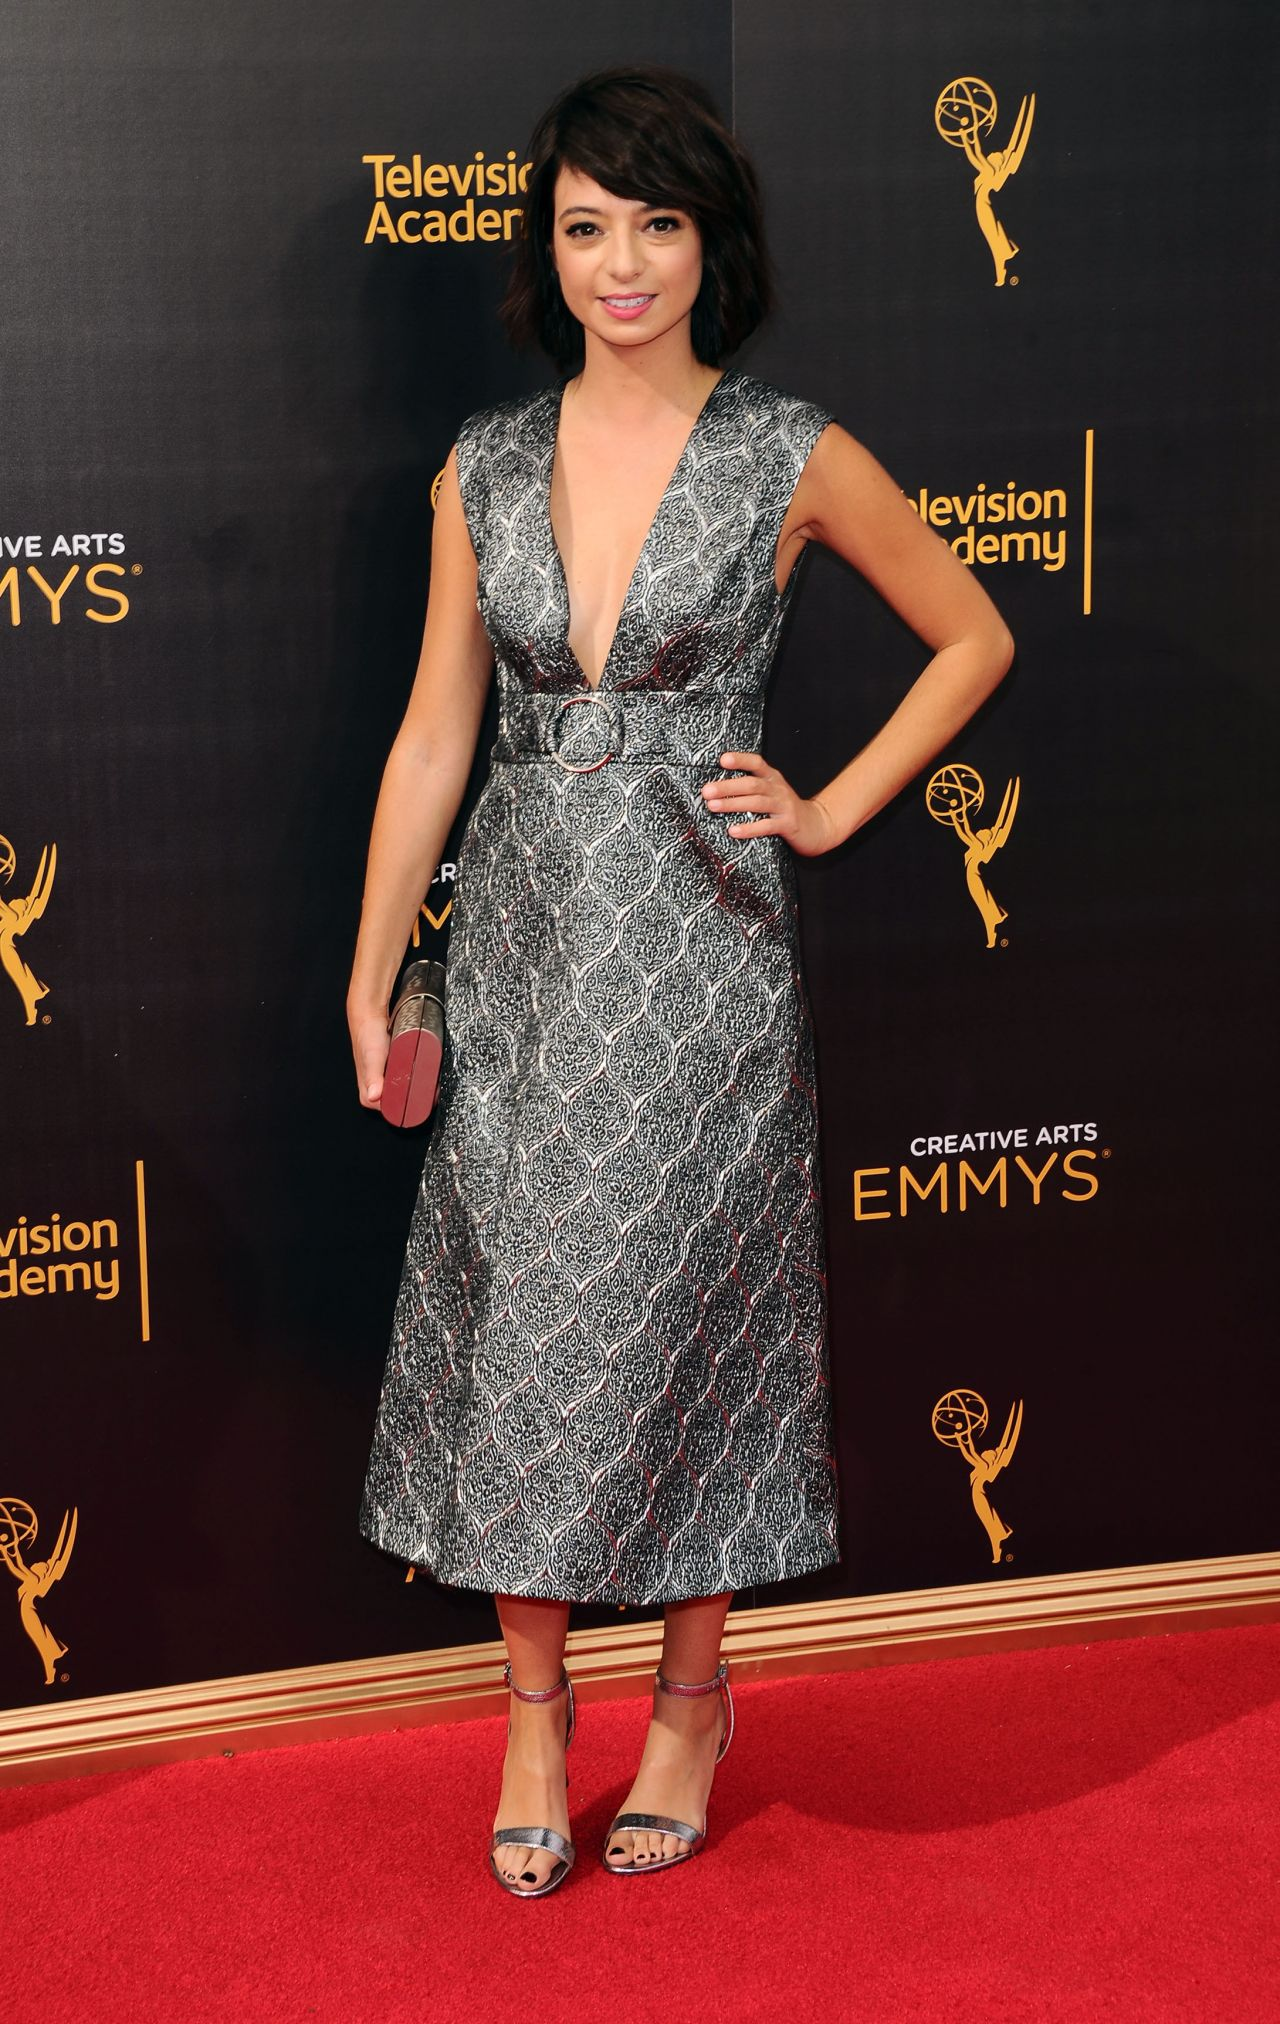 Kate Micucci Creative Arts Emmy Awards In La Day 1 9